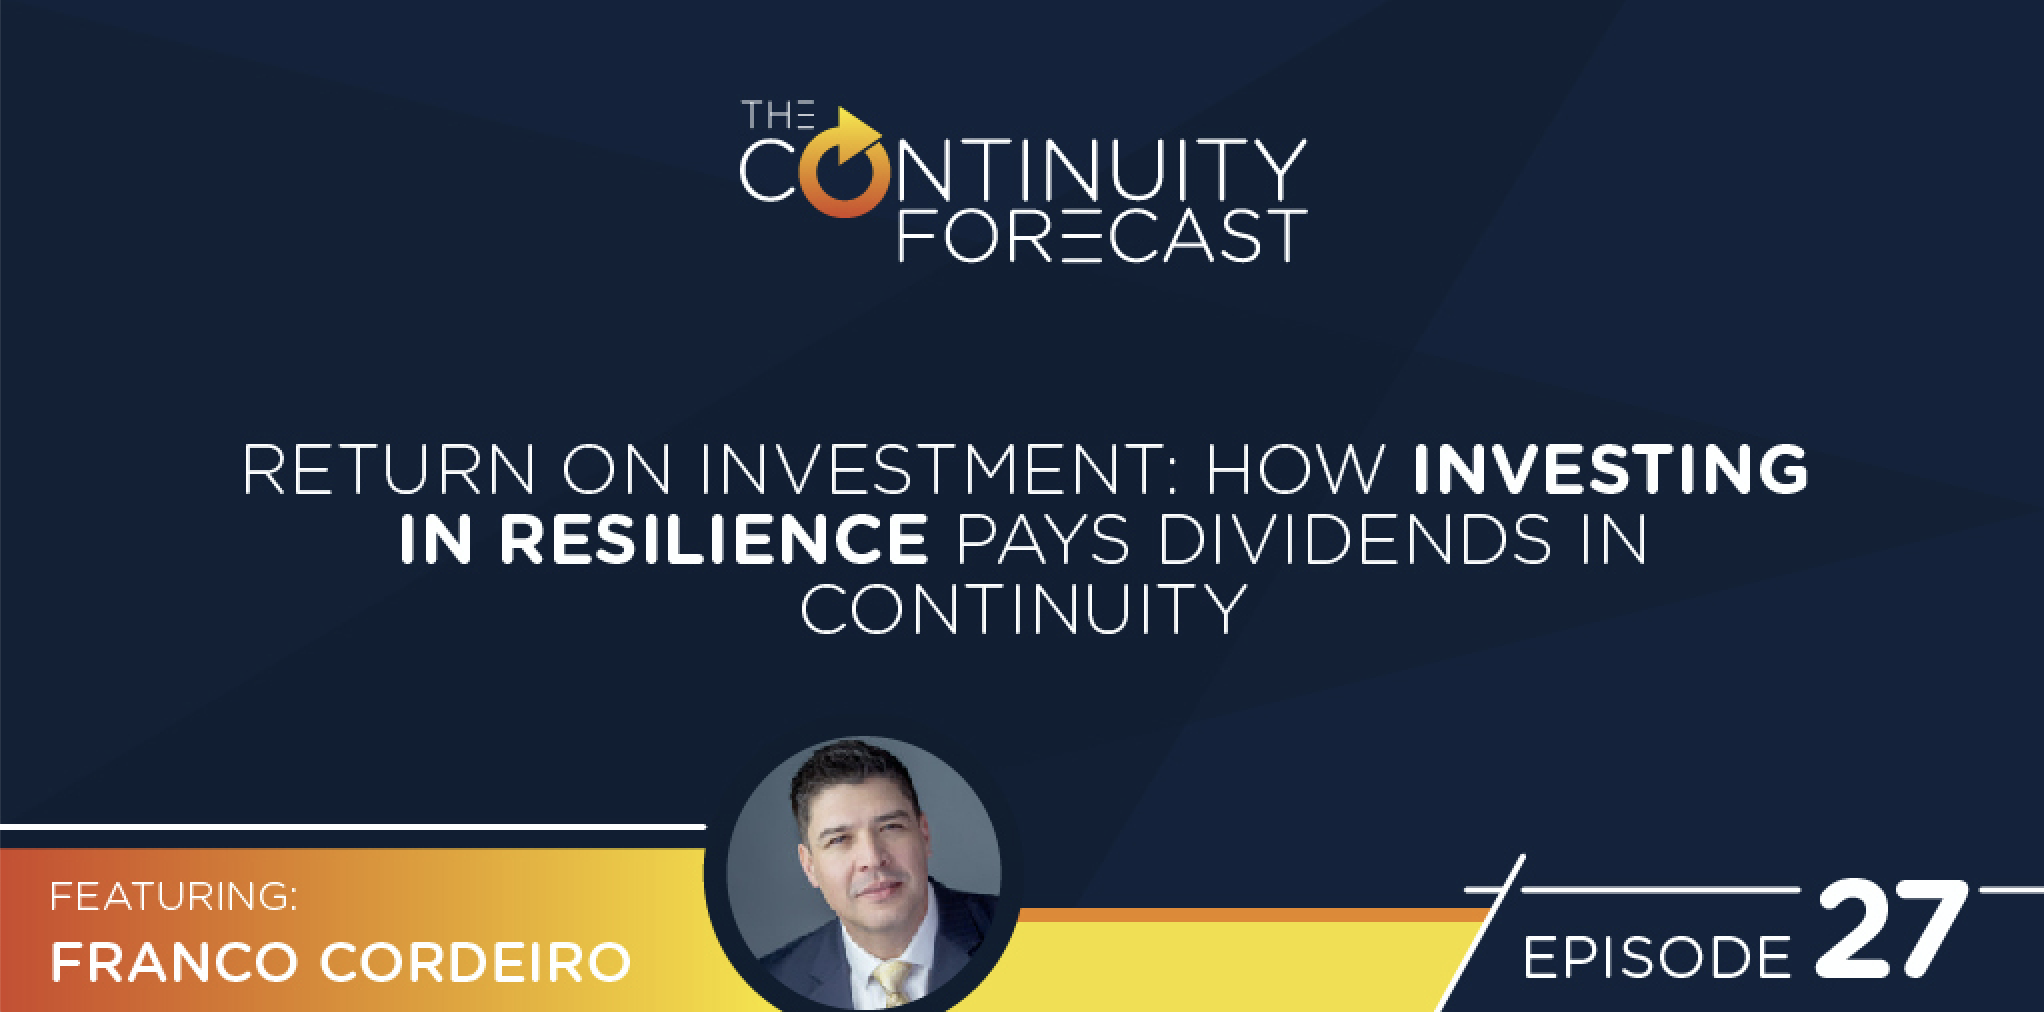 Franco Cordeiro was our guest on the Continuity Forecast business continuity podcast